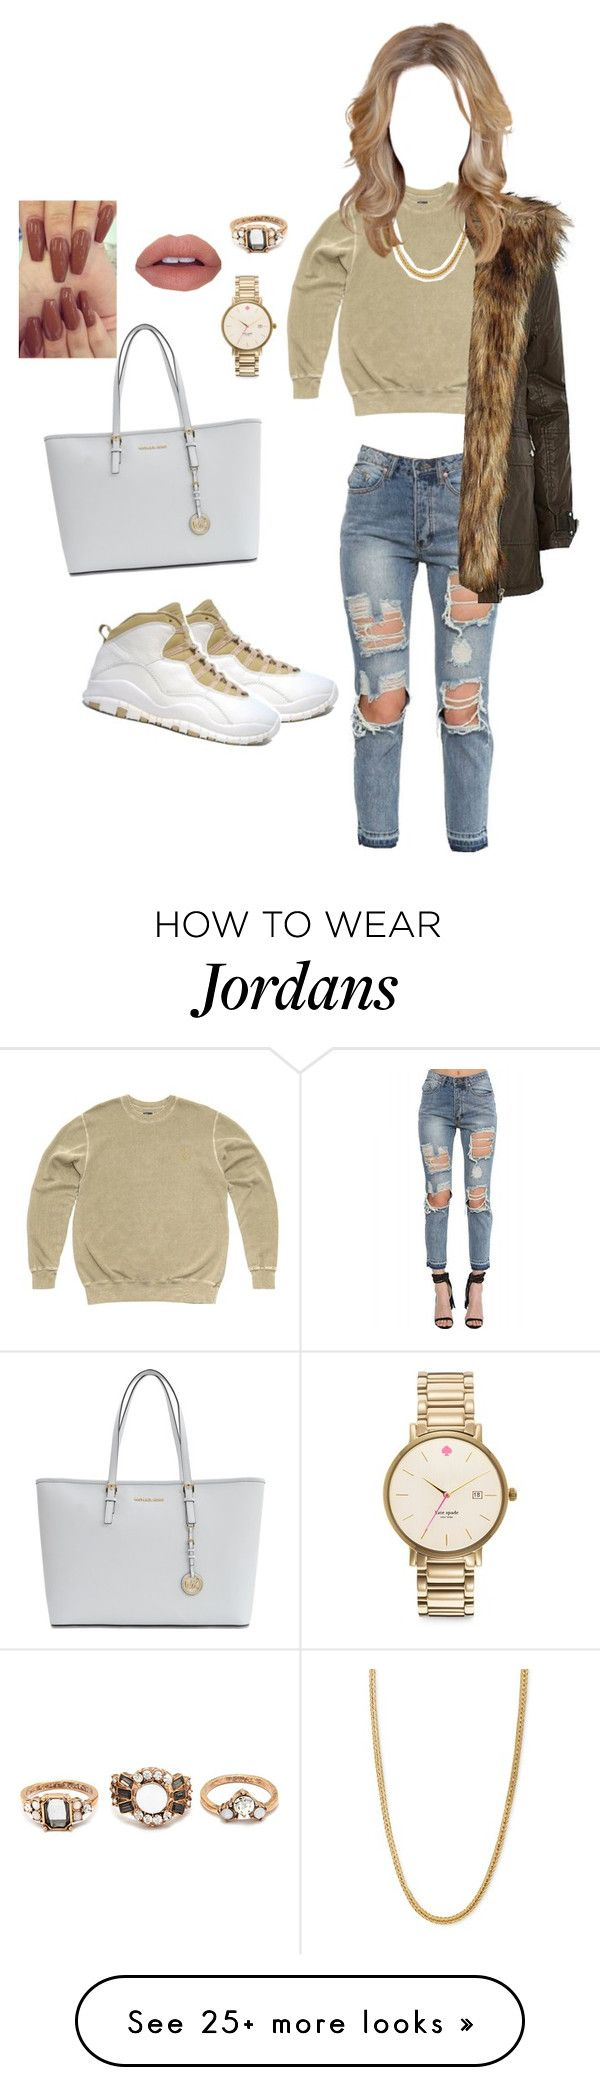 """Feeling this style"" by gabrielabeato on Polyvore featuring Retrò, October's Very Own, Kate Spade, Forever 21, River Island and Michael Kors"